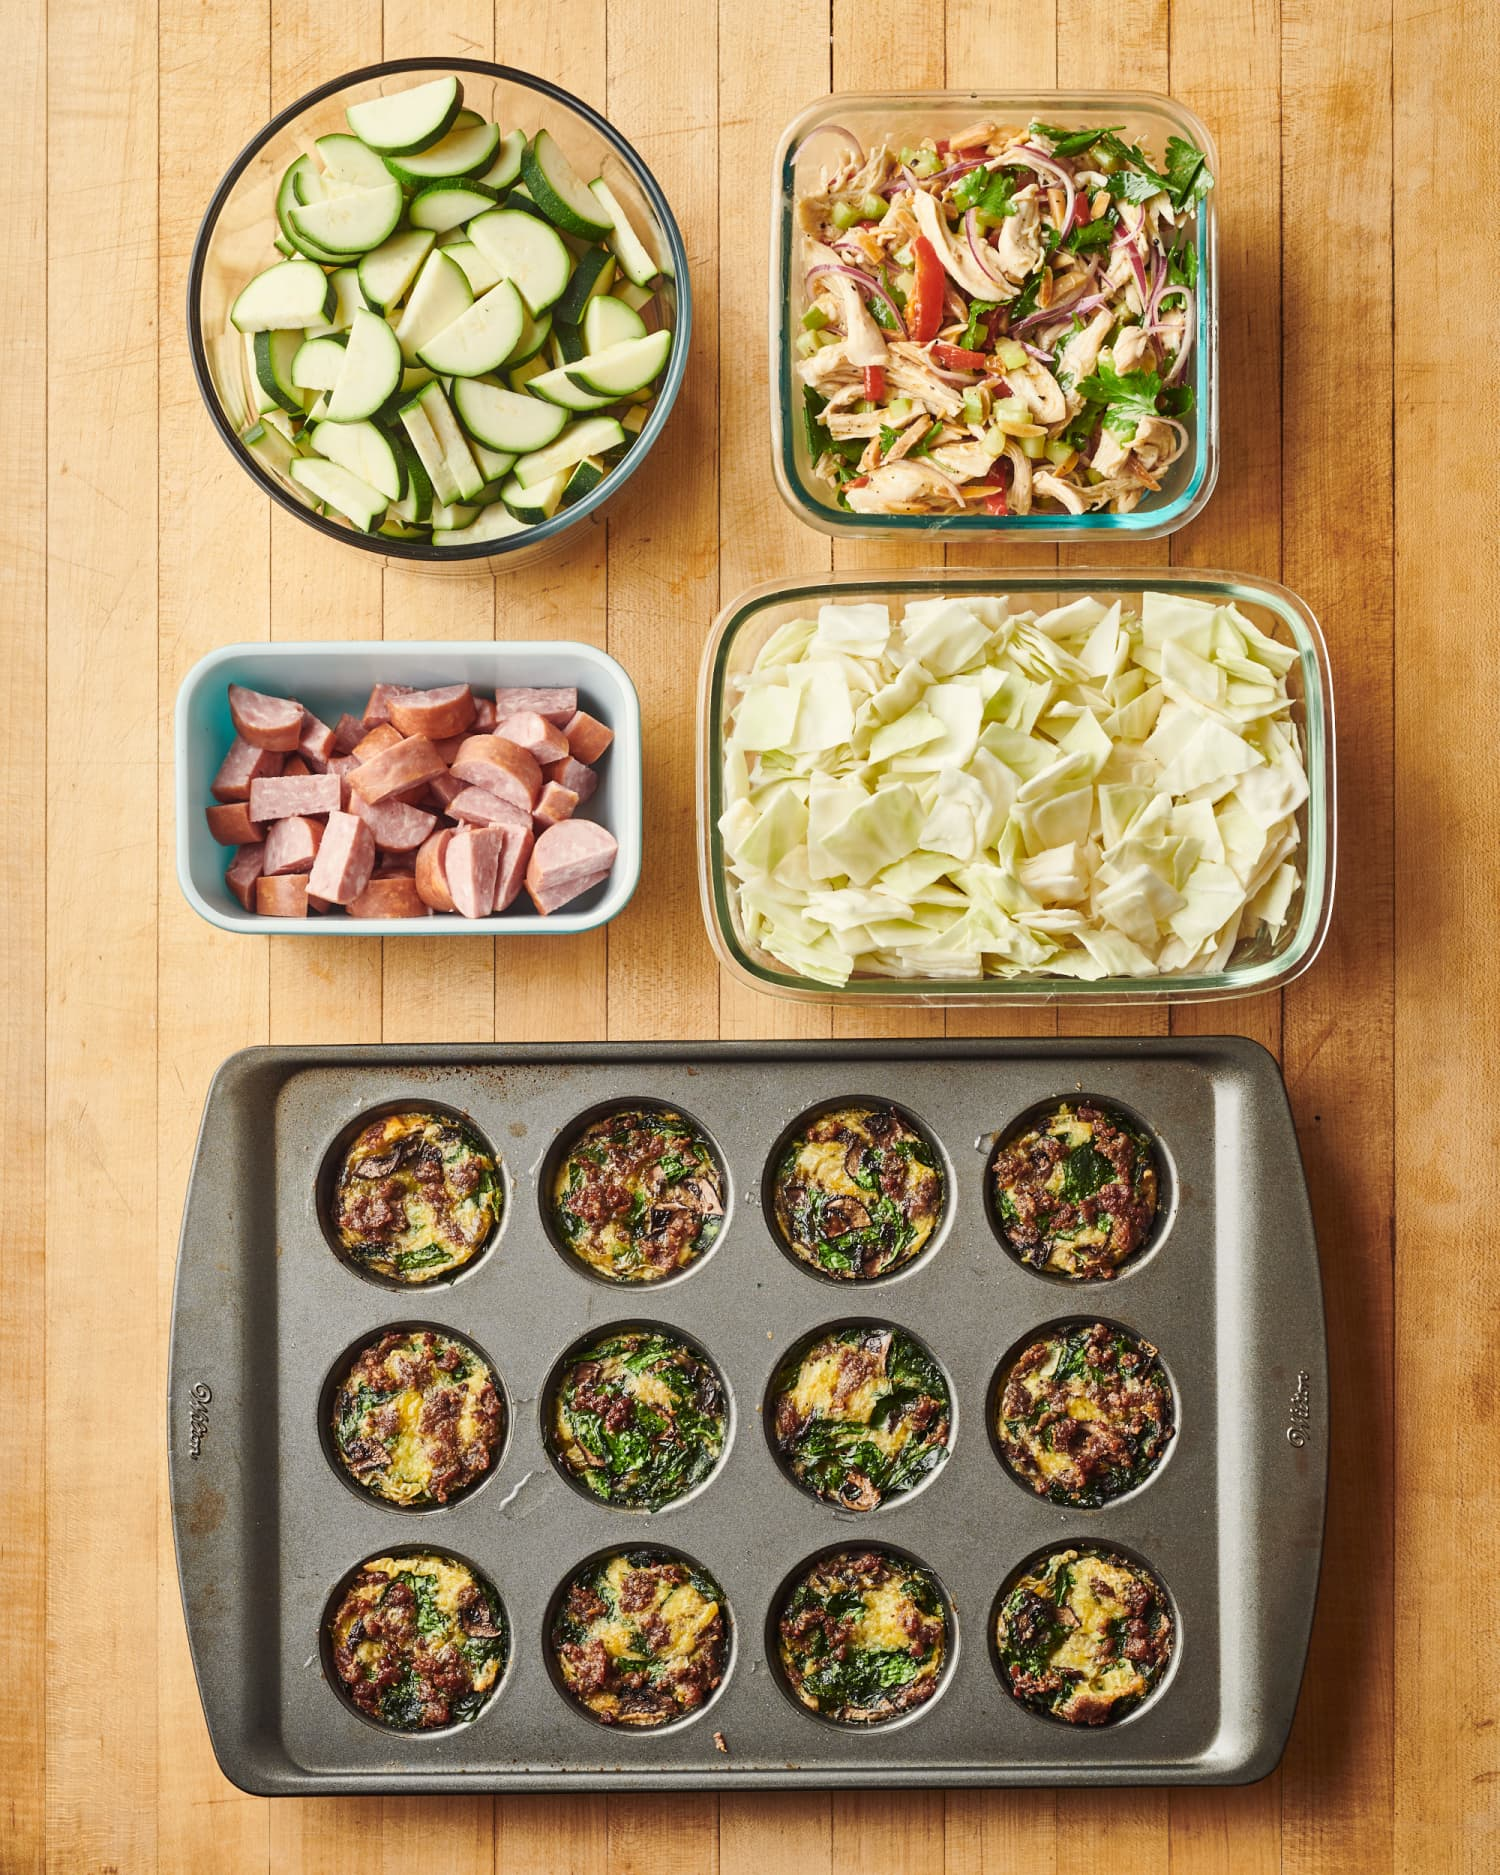 Meal Prep Plan: How I Prep a Week of Simple Keto Meals